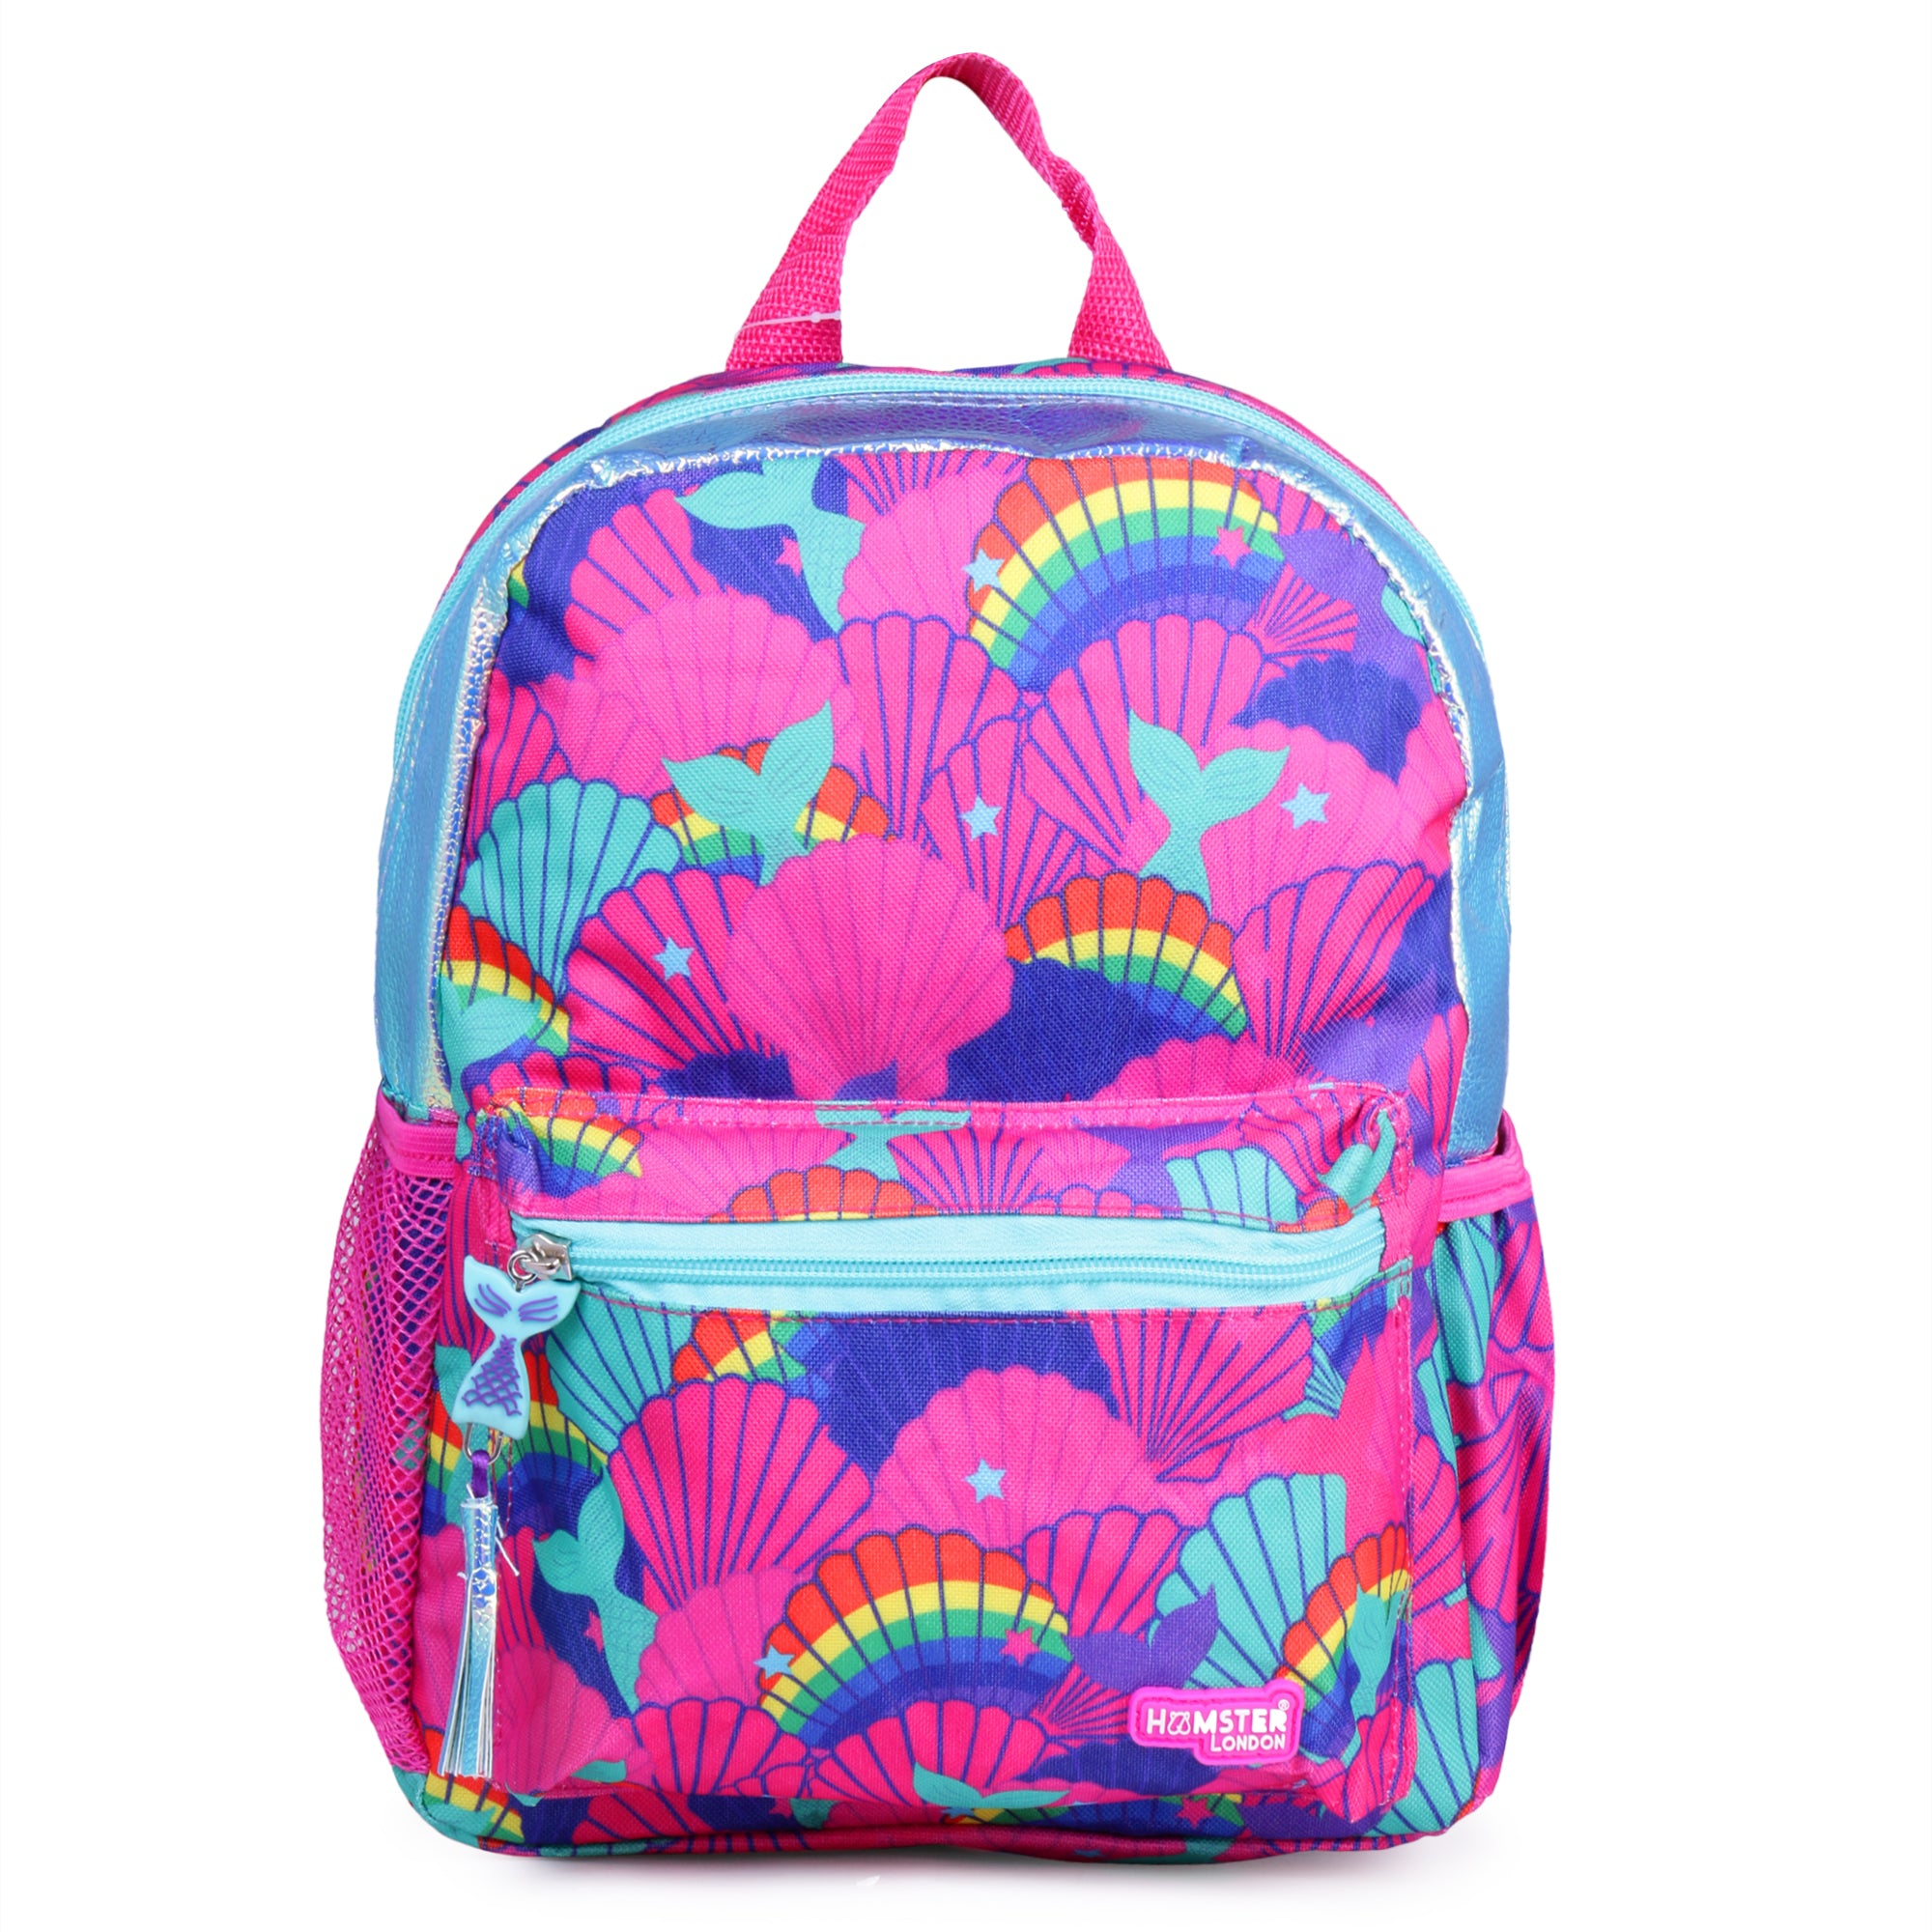 Small Mermaid Backpack For Kids